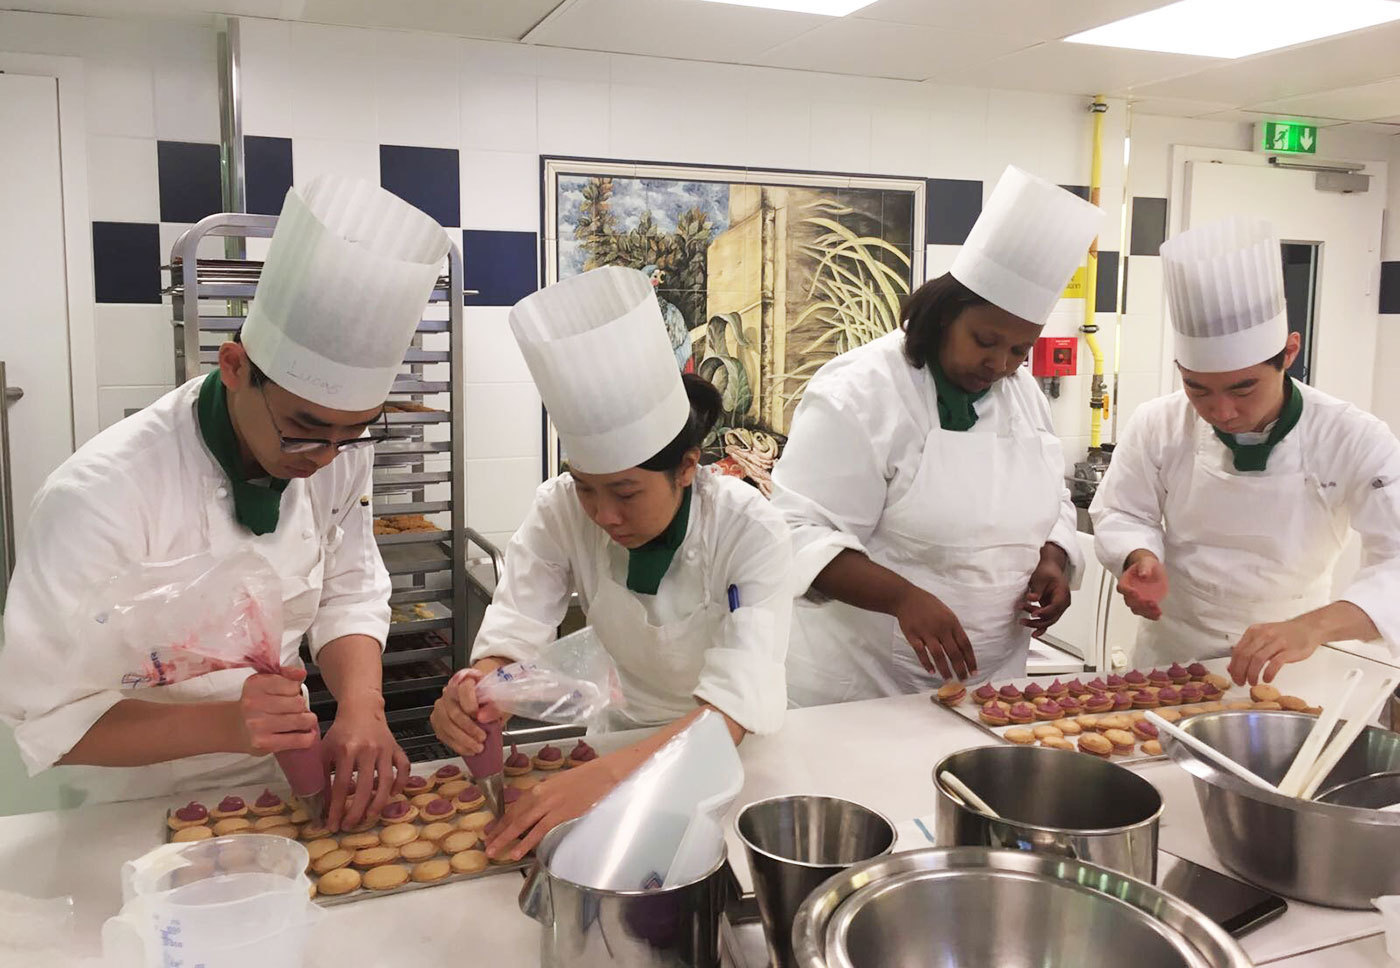 L'École Escoffier Ritz Paris is the epitome of excellence in culinary education